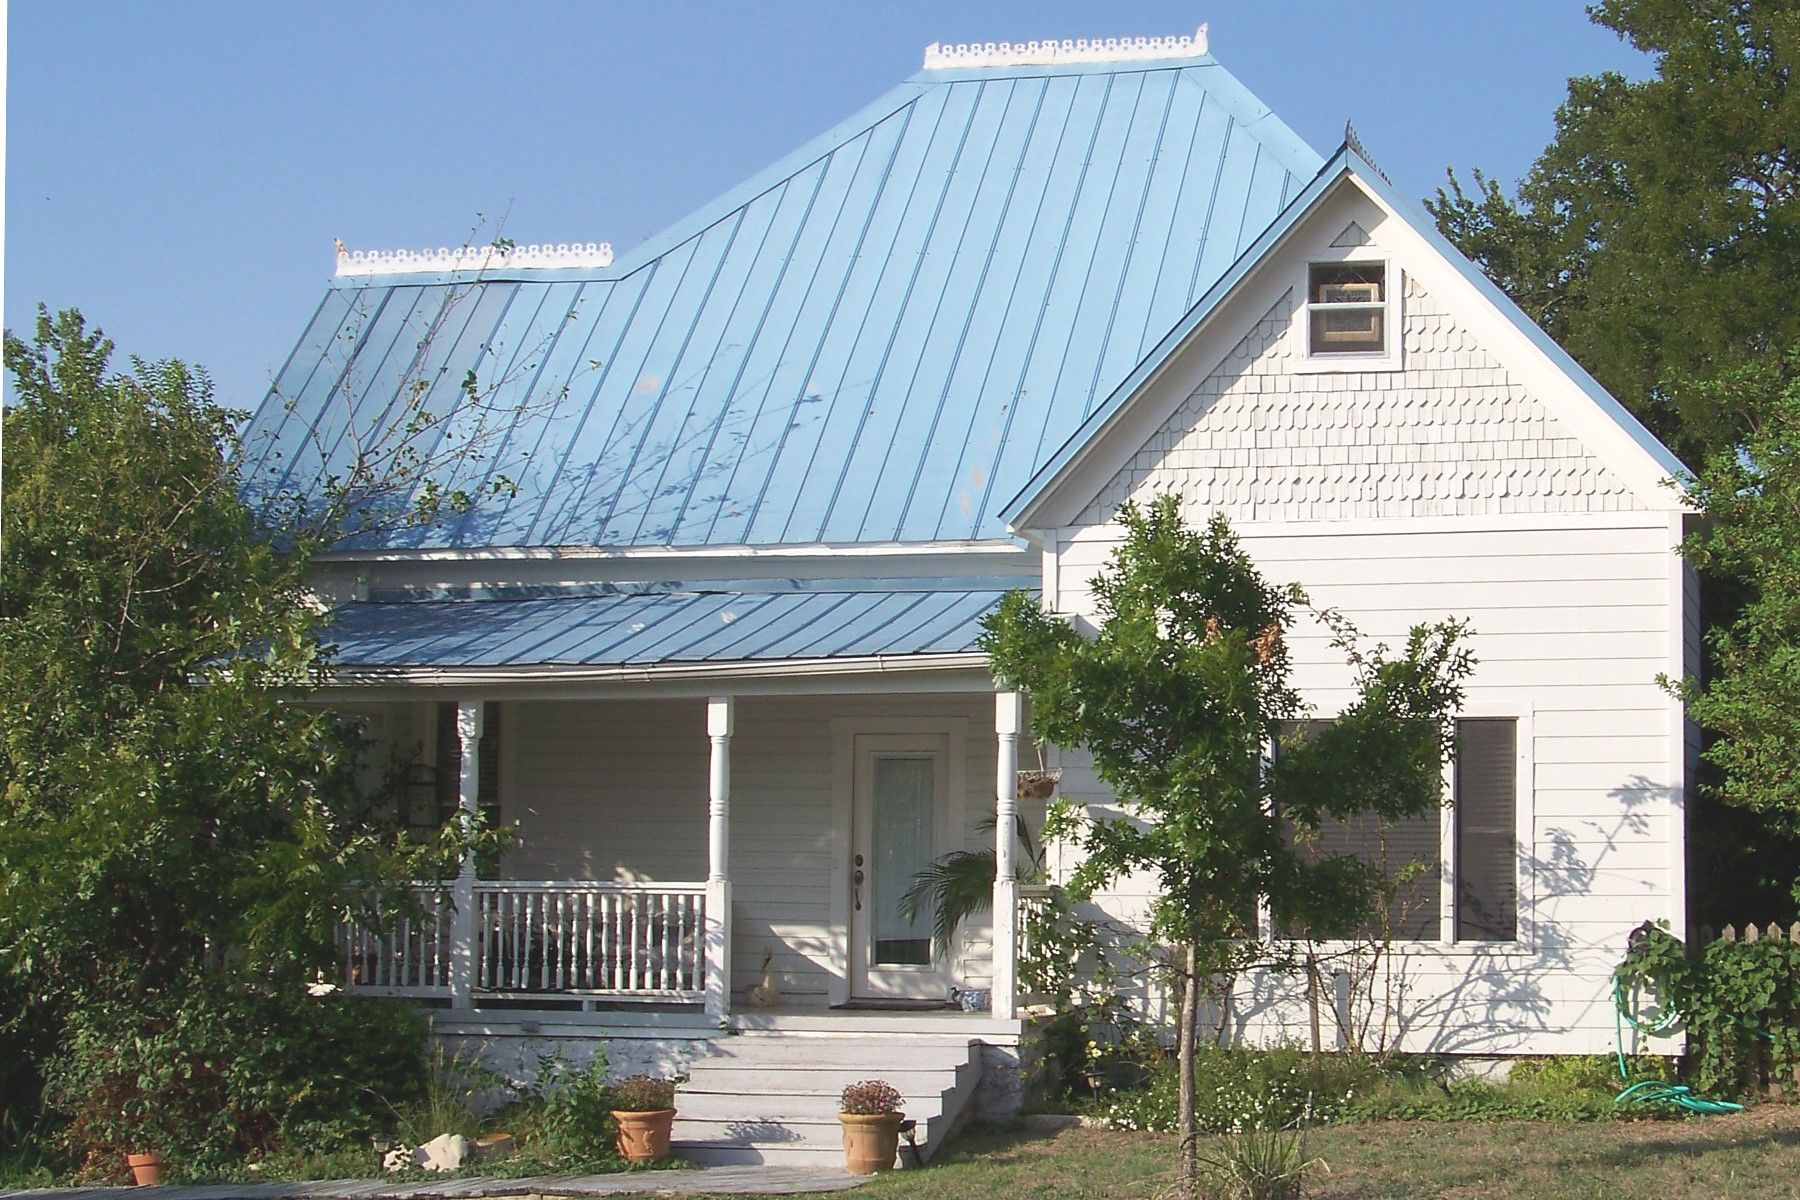 This Frame House With A Blue Metal Roof Was Built For H L Tate Sr In 1905